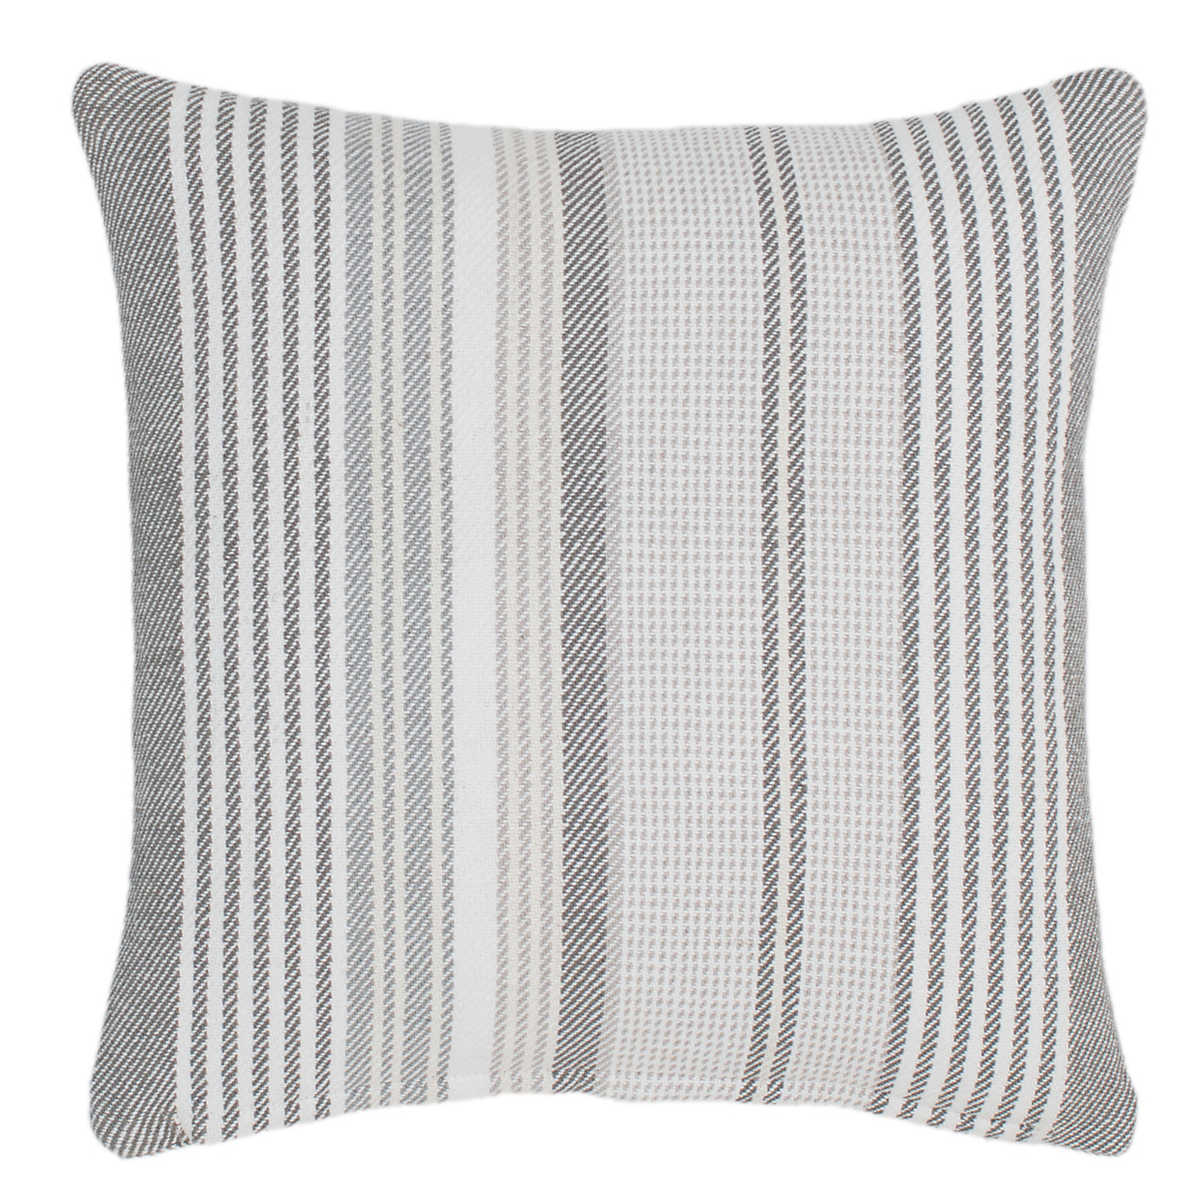 Gradation Ticking Woven Cotton Decorative Pillow Dash